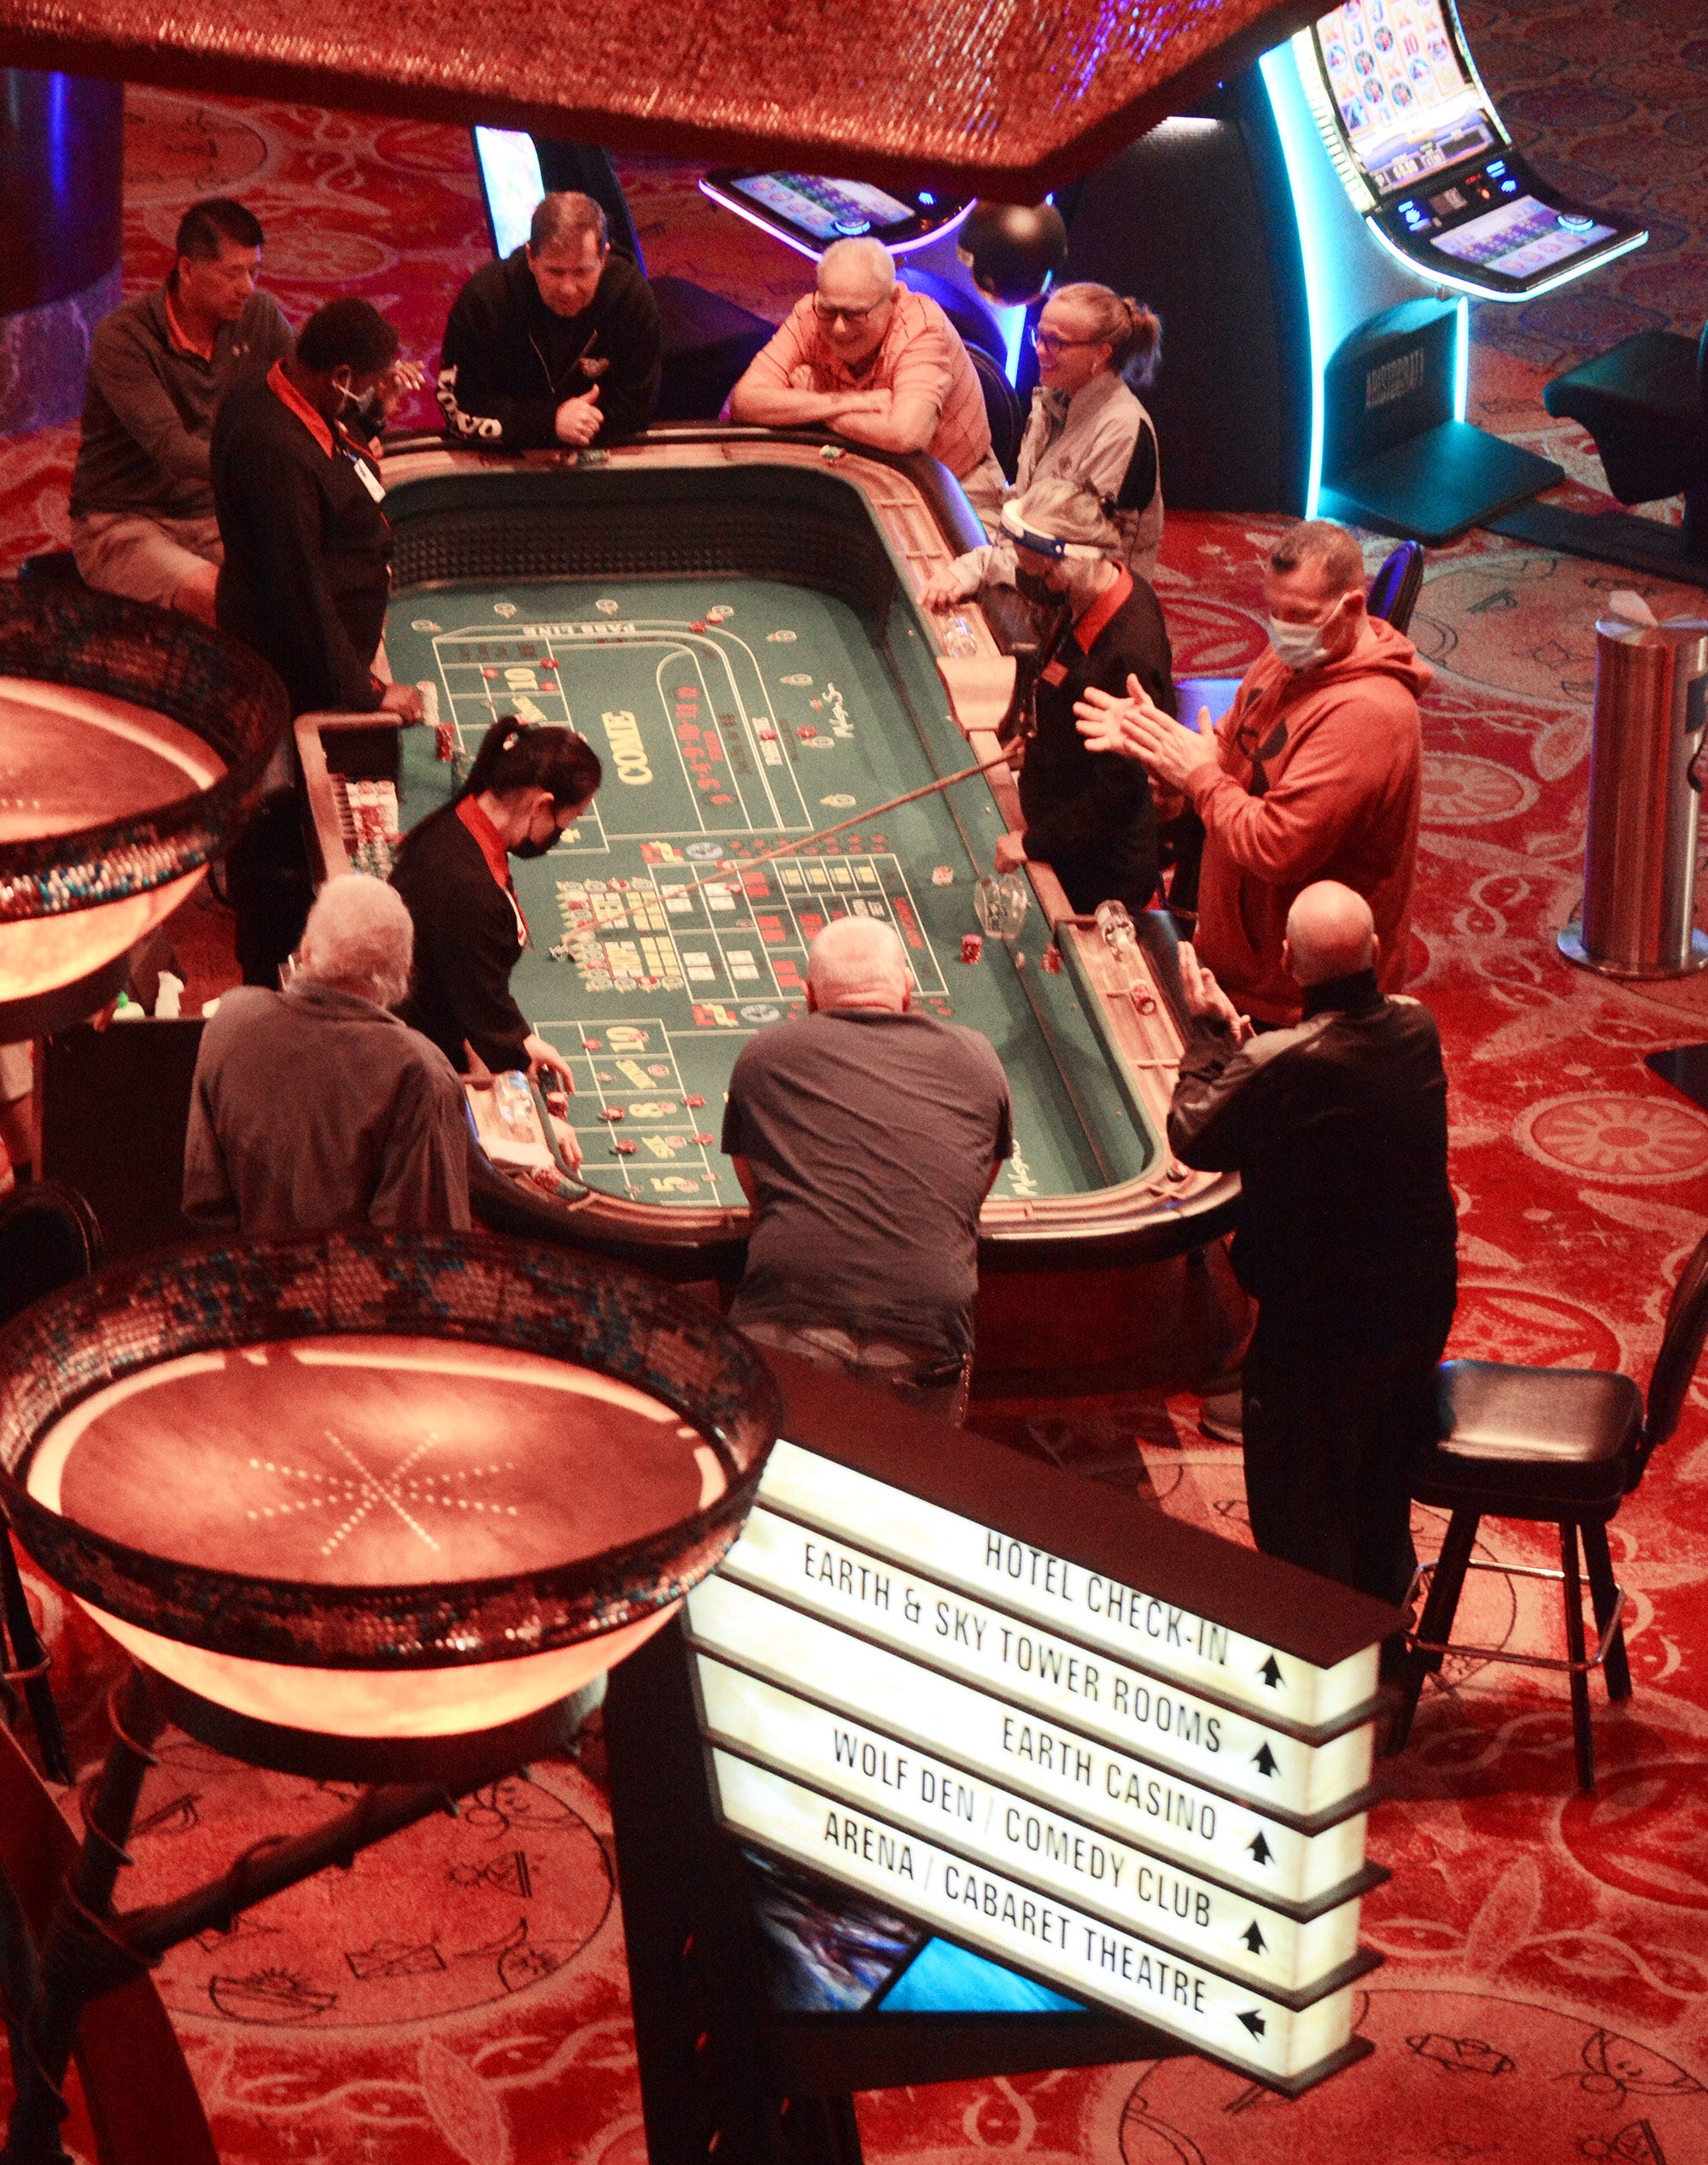 A craps table at the Casino of the Sky gaming area at  Mohegan Sun.